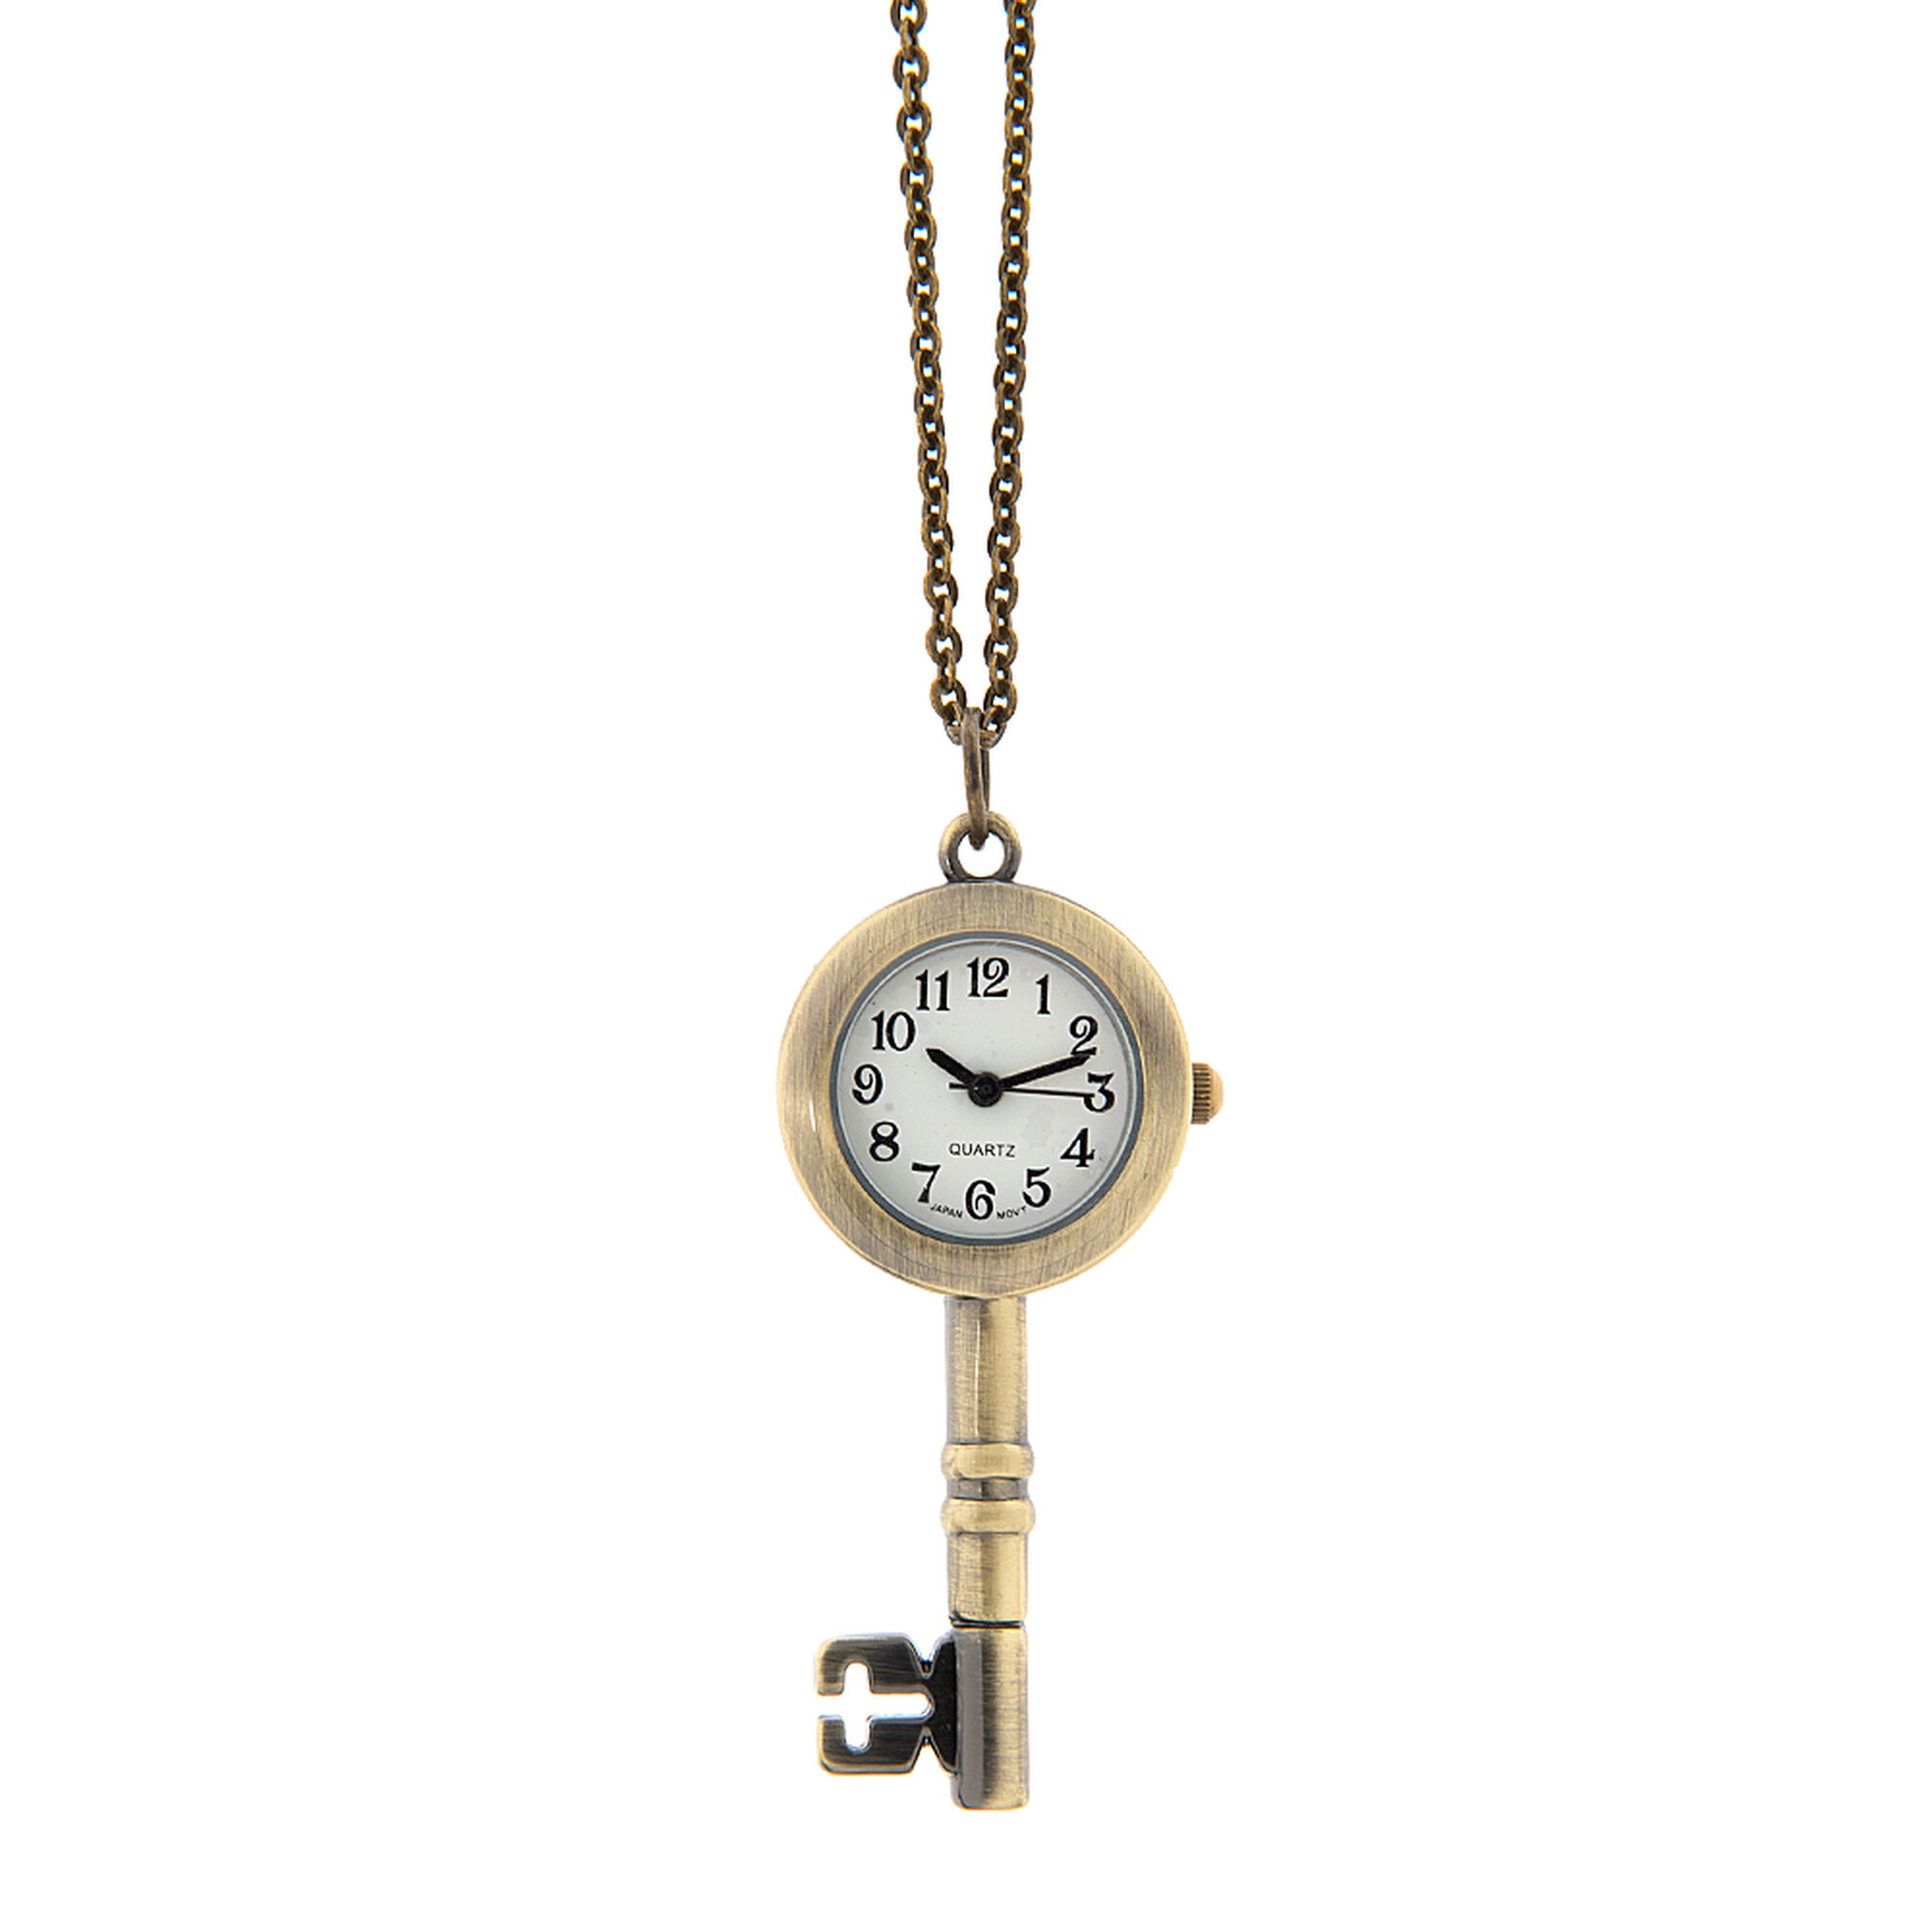 cms limited dp pendant premium direction smrl in watch boys edition one pocket jewellery amazon diameter